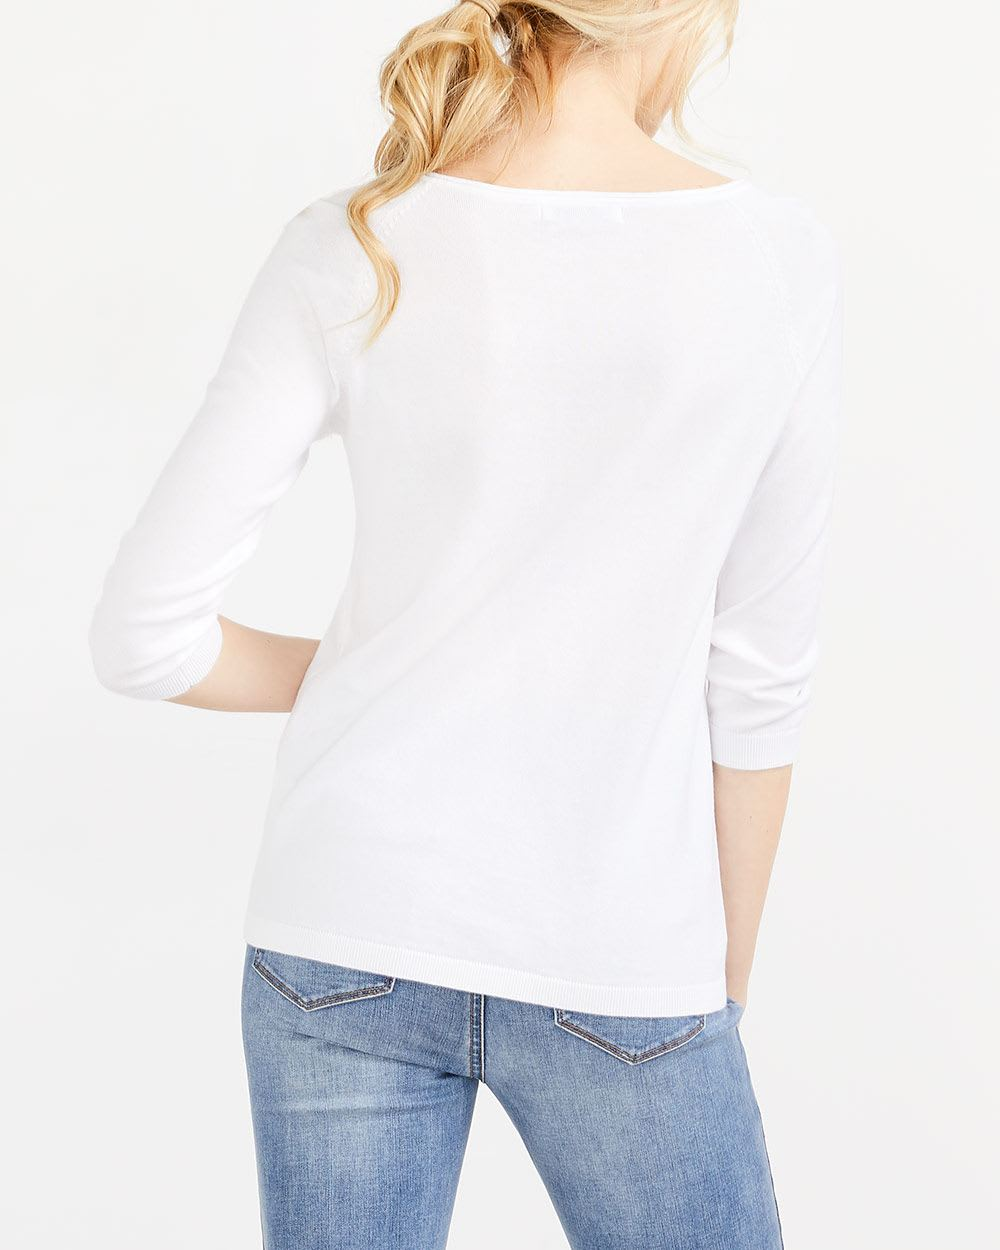 R Essentials ¾ Sleeve V-Neck Sweater